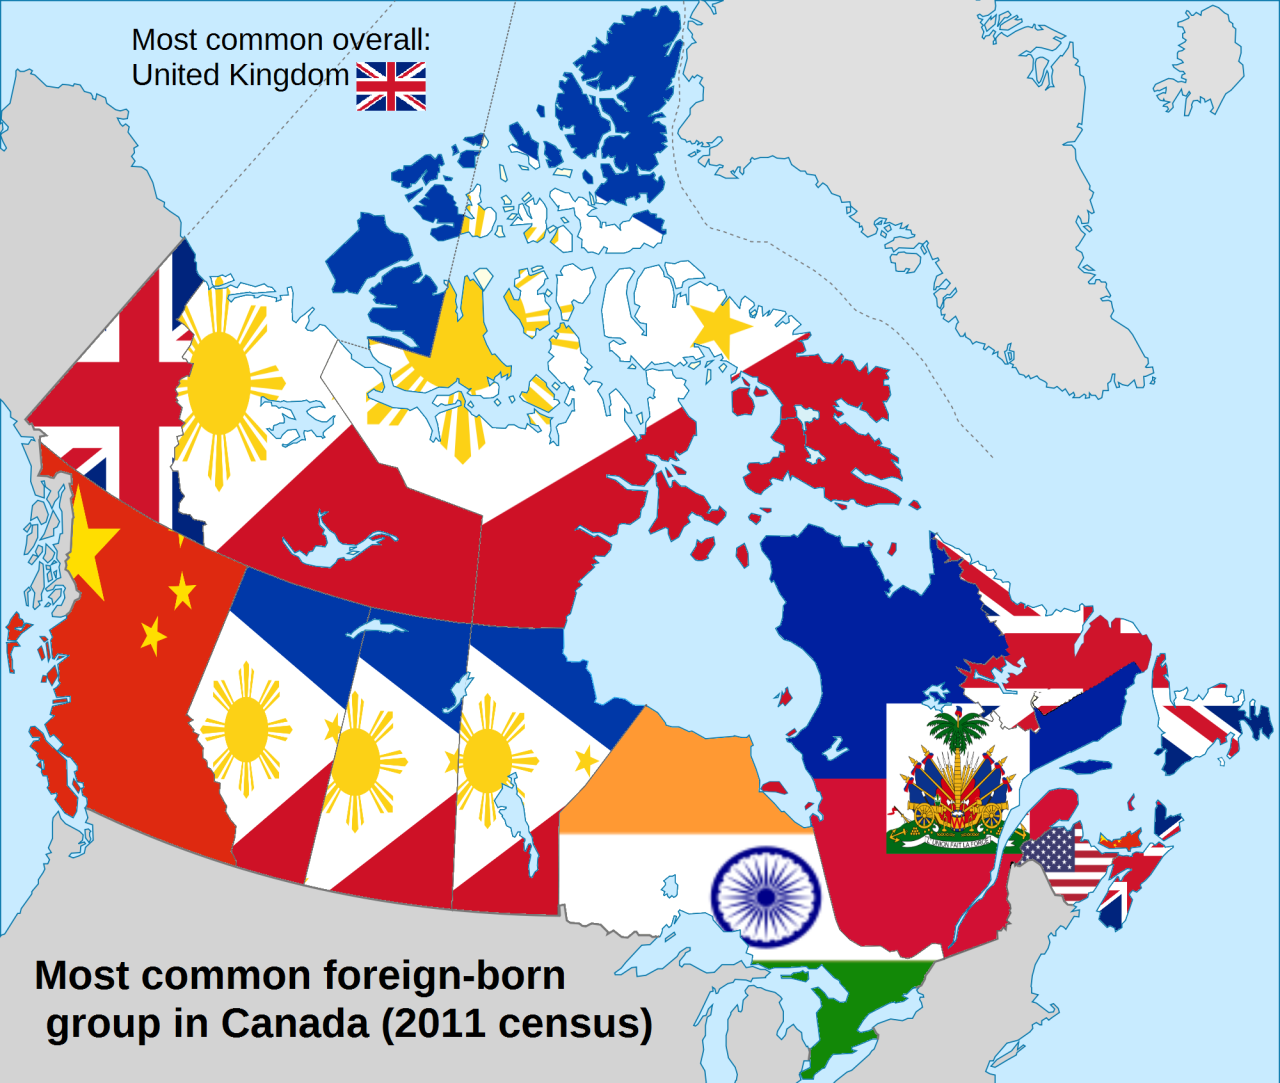 Most common foreignborn group in Canada by province